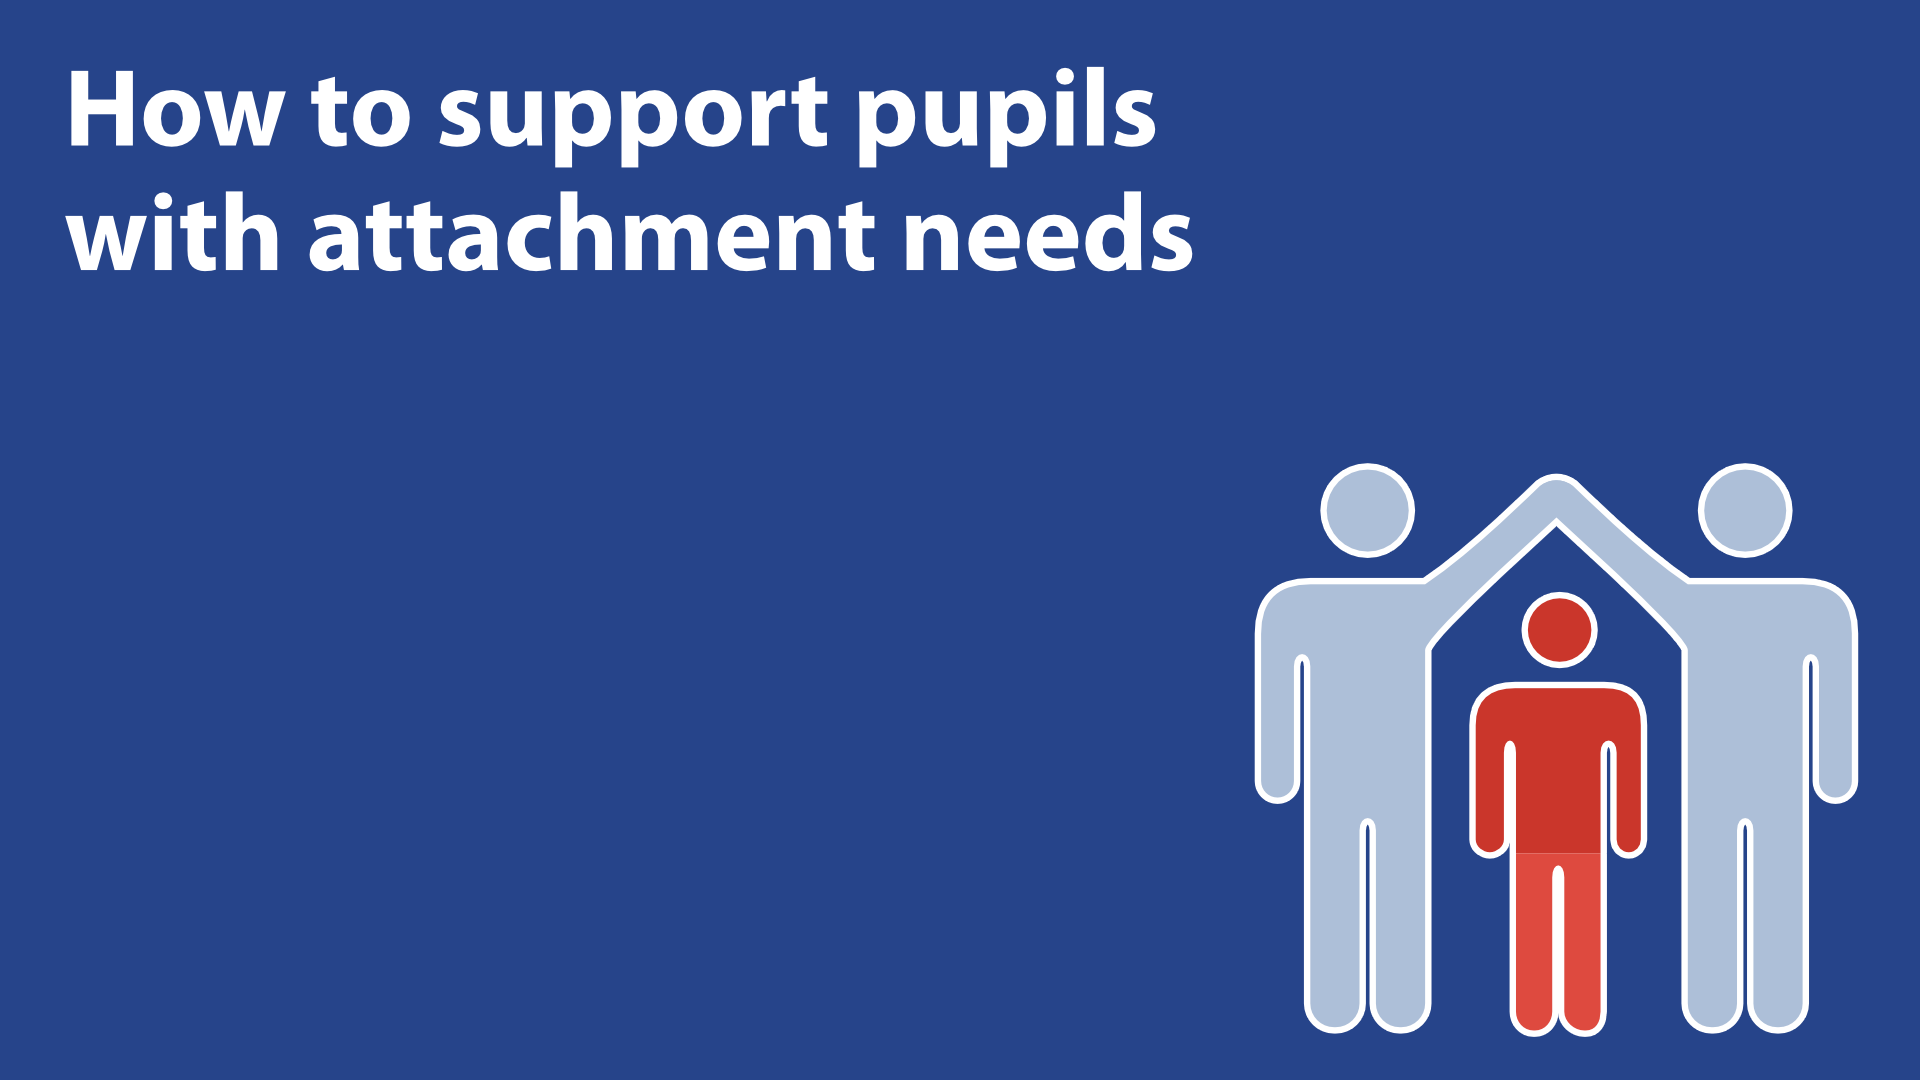 How to Support Pupils With Attachment Needs image